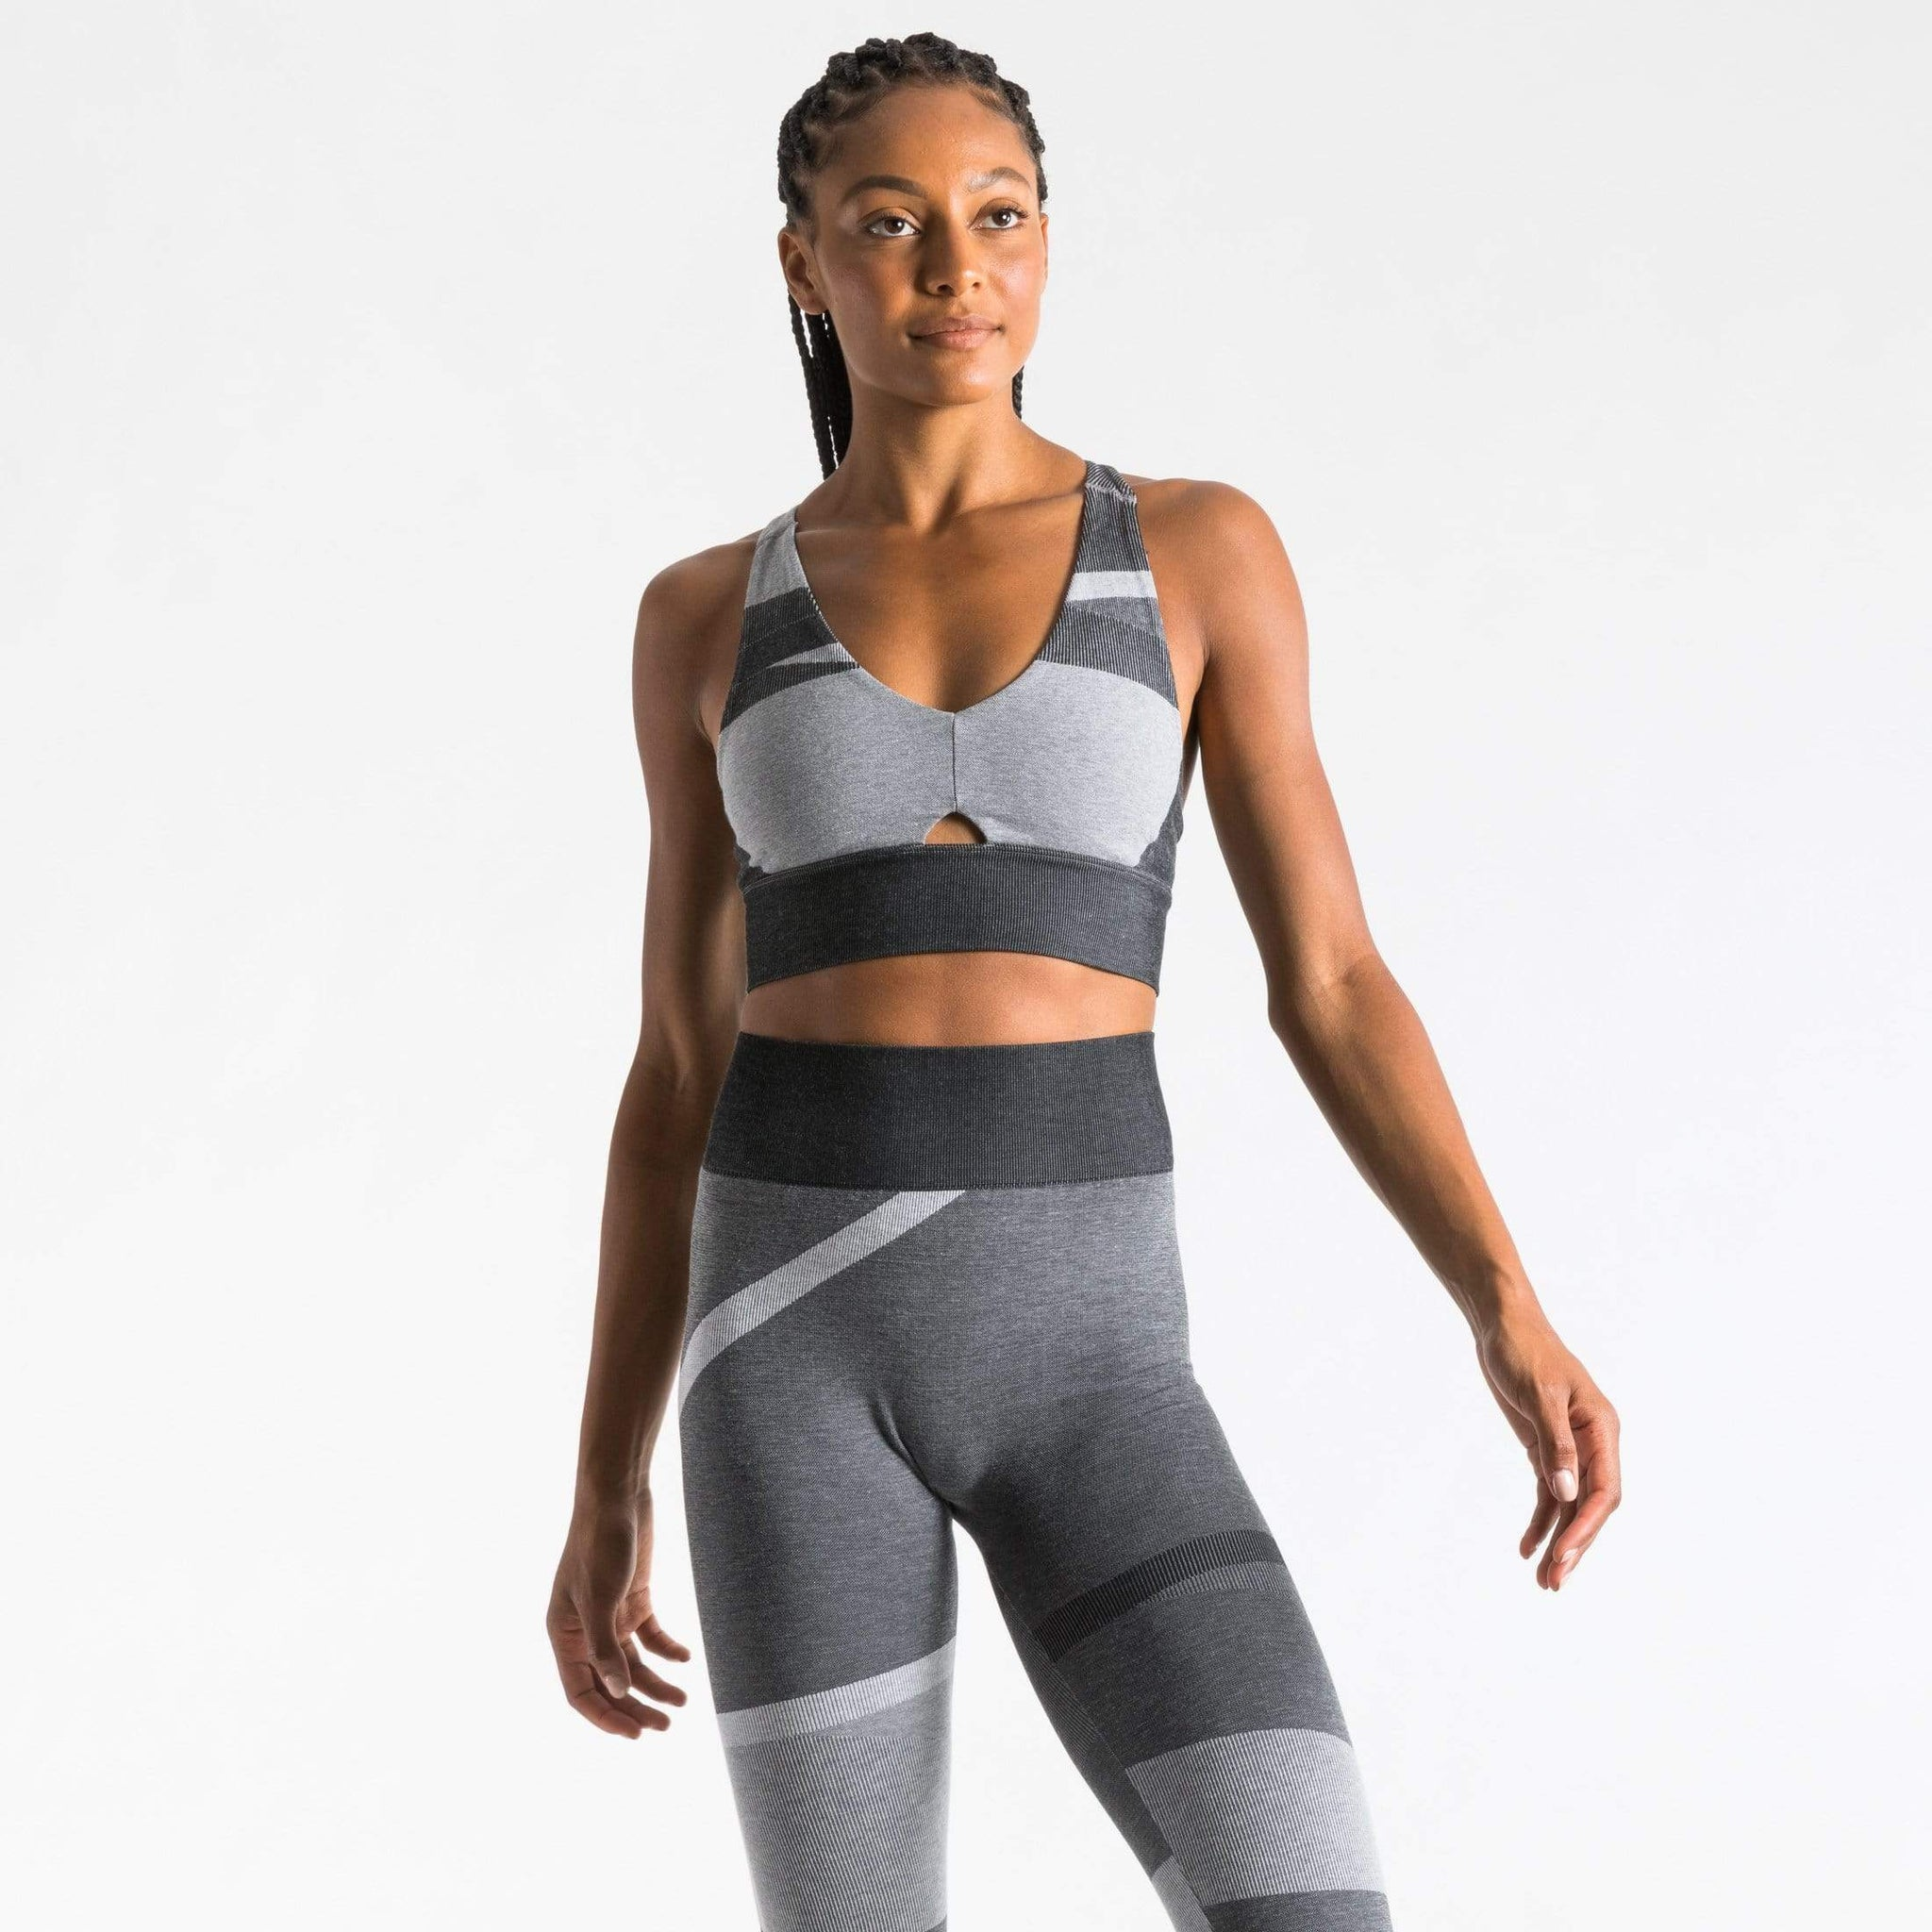 Reebok Sports Bras Reebok Studio Nature X Seamless Light Support Sports Bra